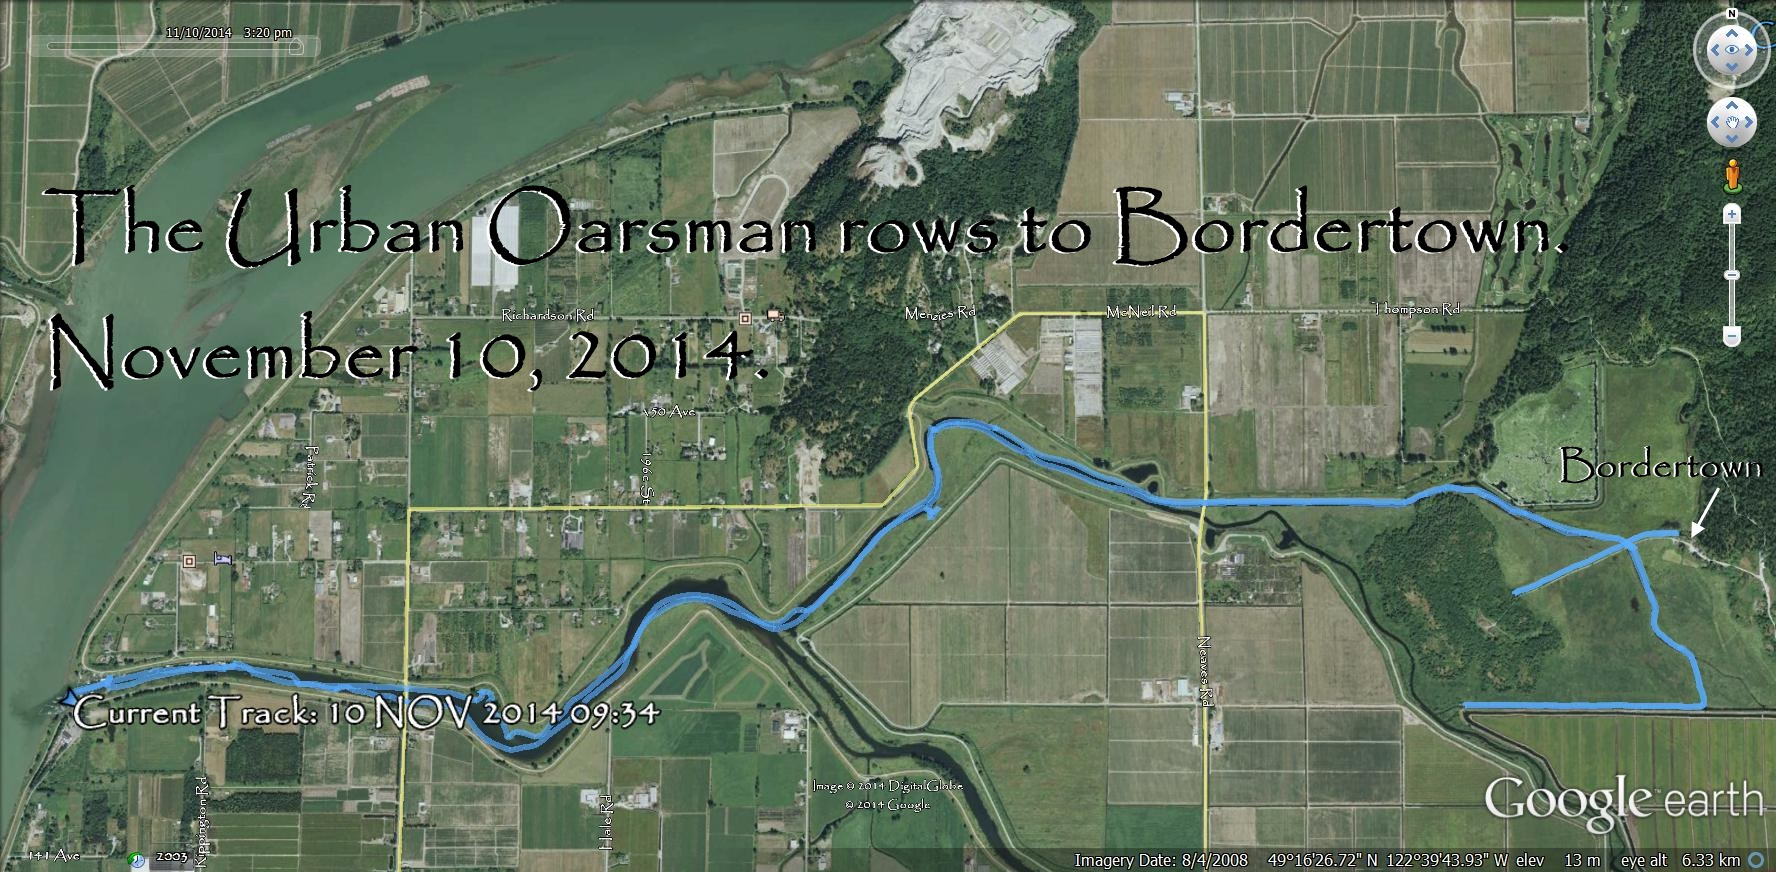 The Urban Oarsman Rows up the Alouette River to Bordertown